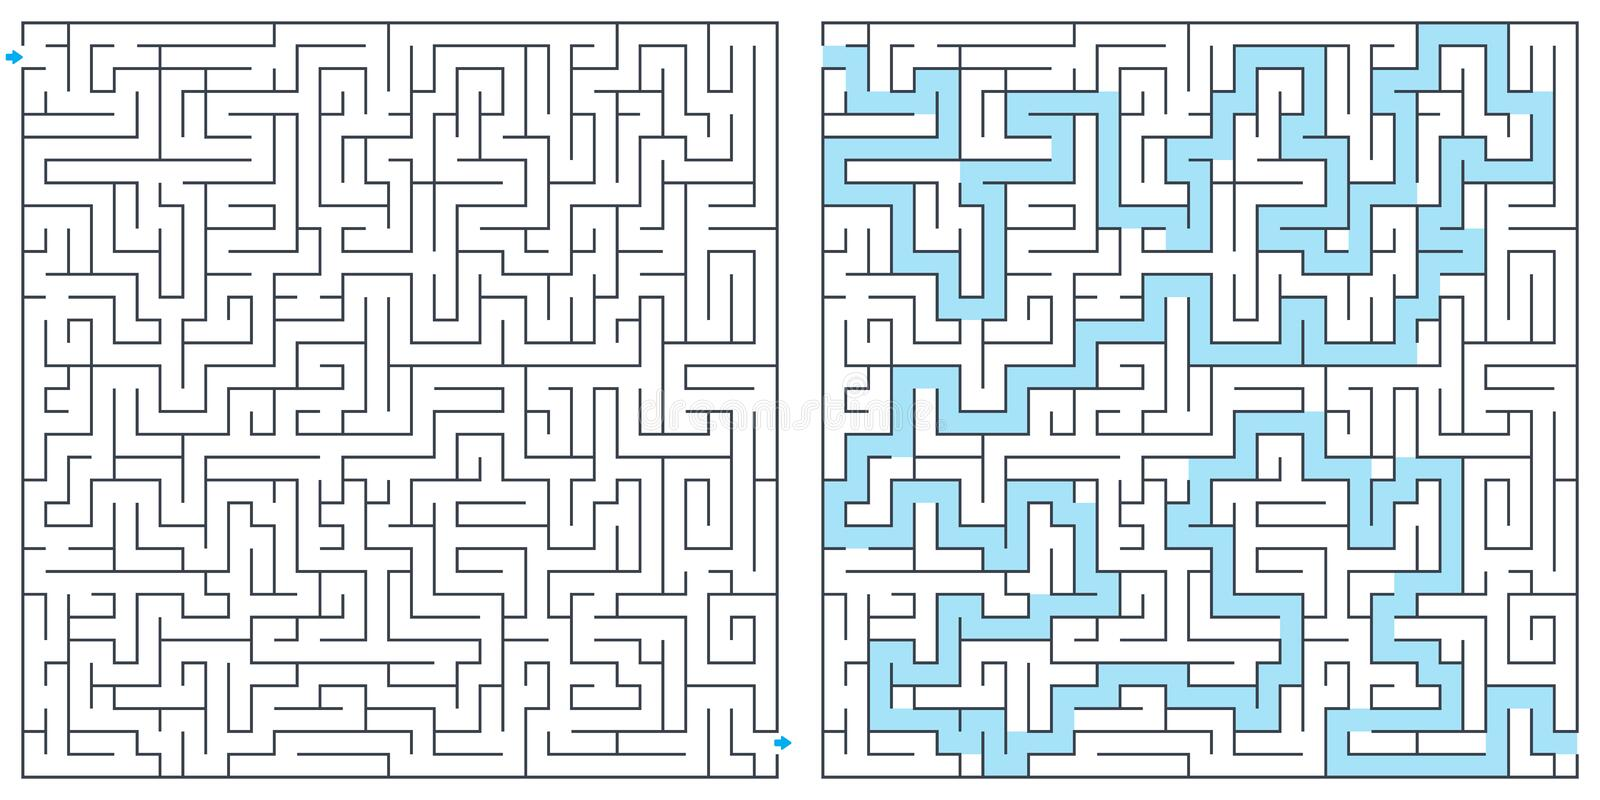 Labyrinth, maze with solution vector illustration. Square maze. High quality vector. vector illustration